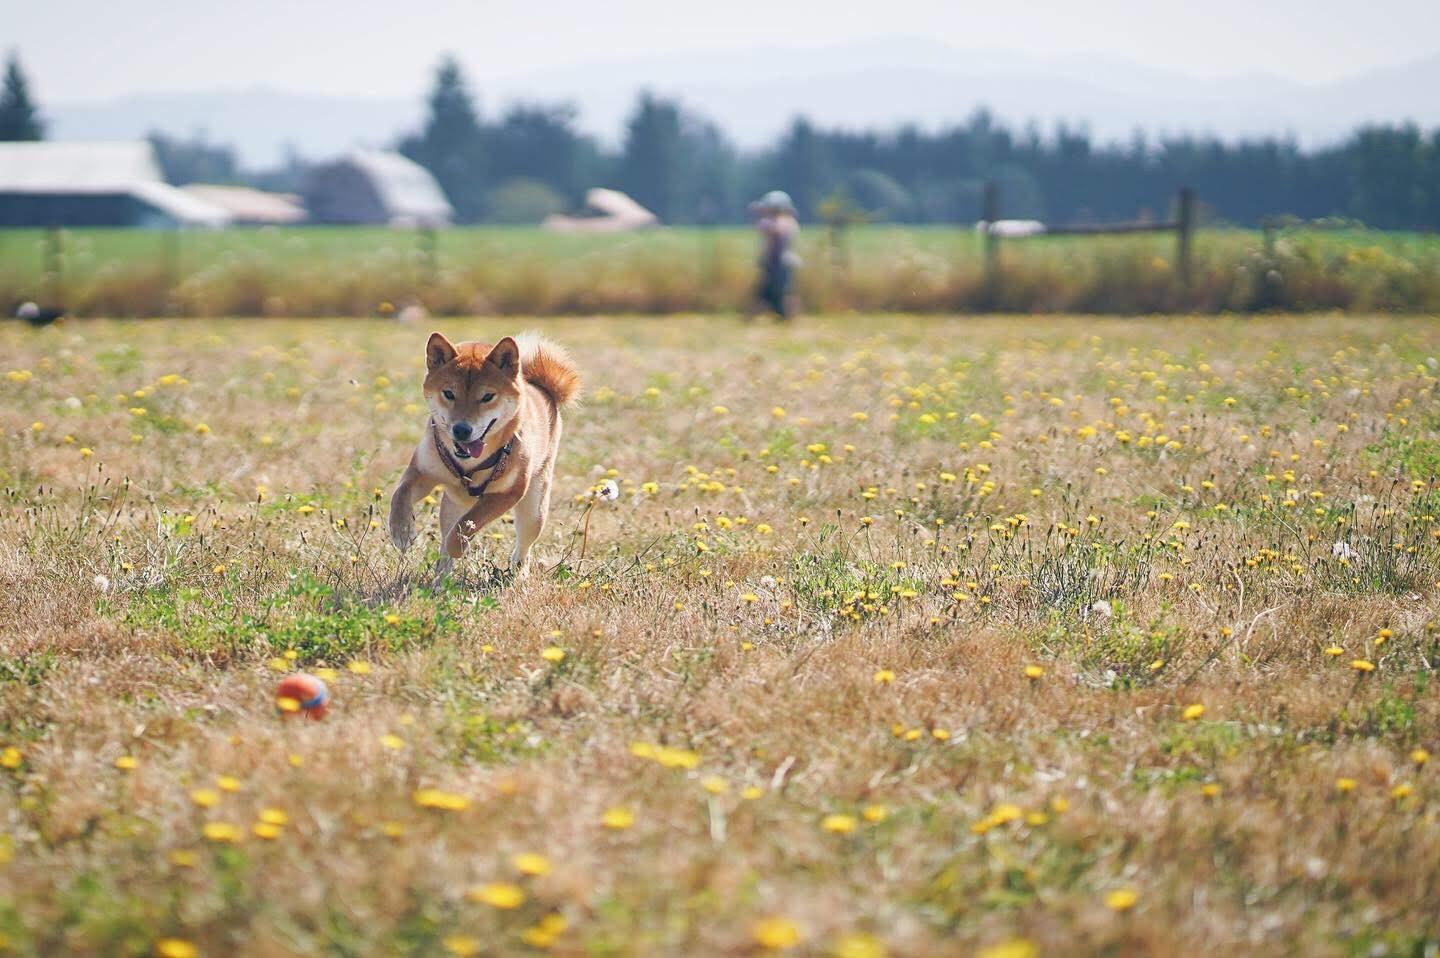 An image of a dog running through a field toward the camera.